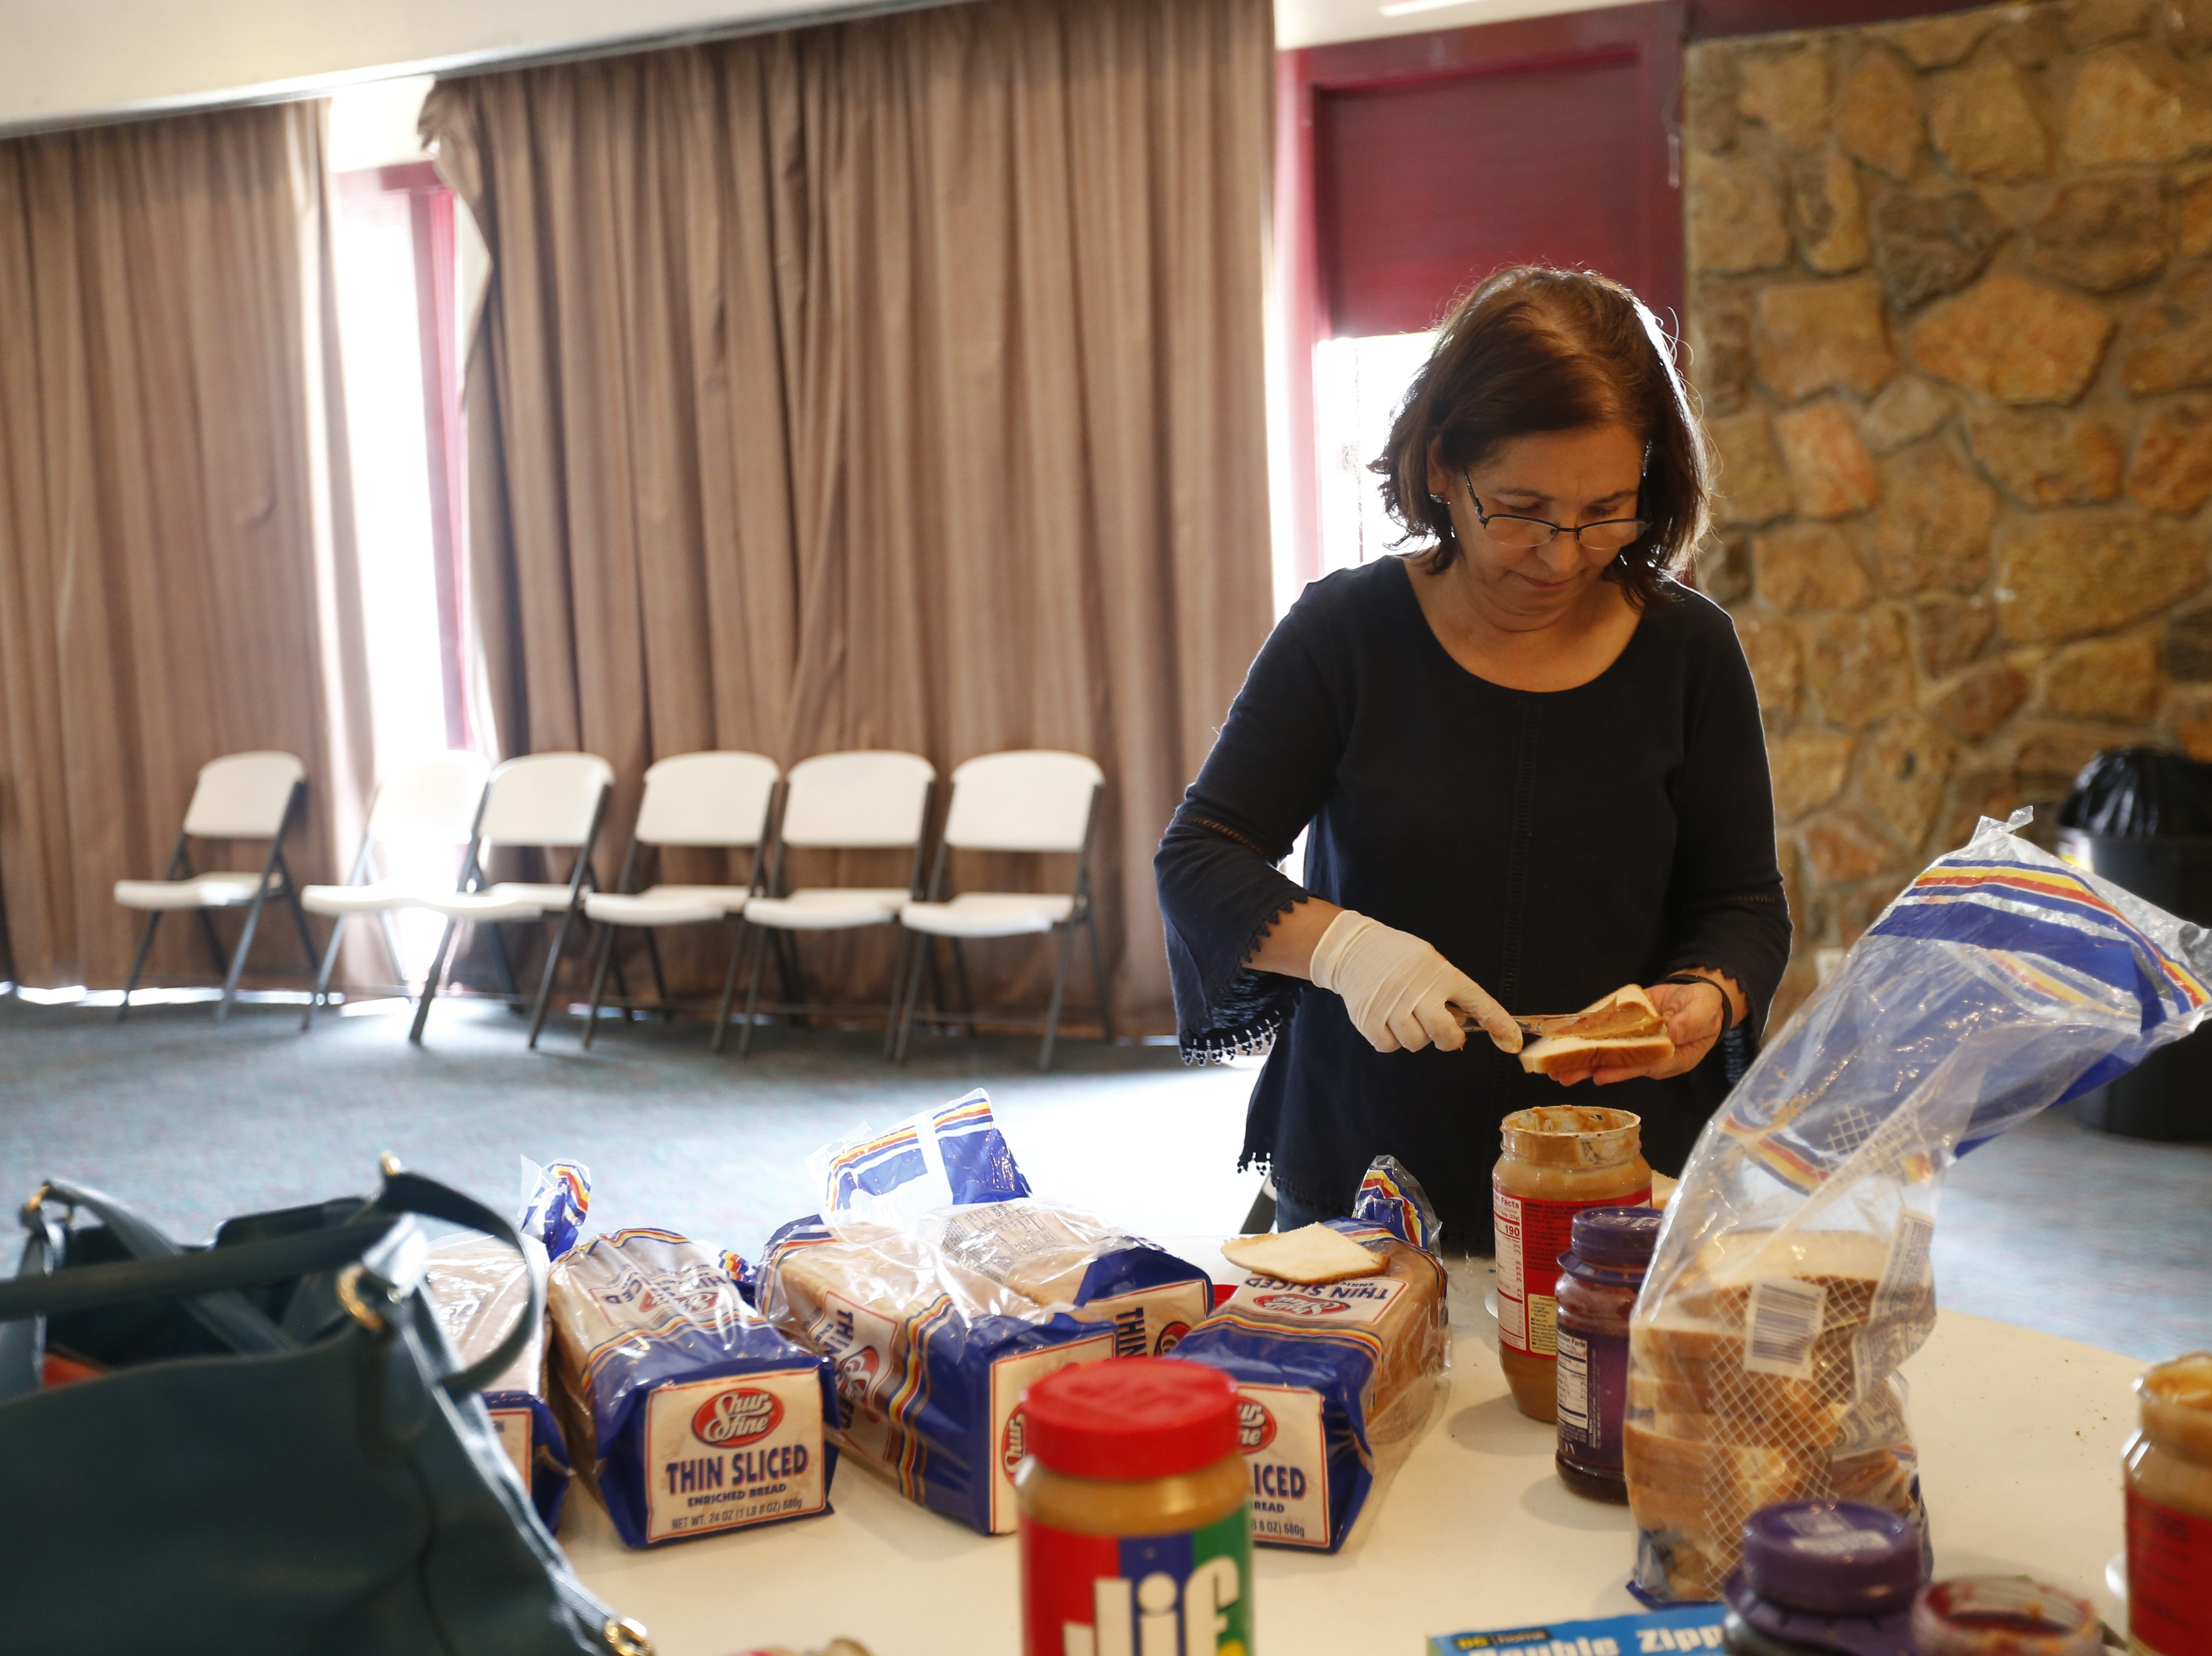 Noelia Molina, 61, helps prepare peanut butter and jelly sandwiches for migrants at a west El Paso hotel.